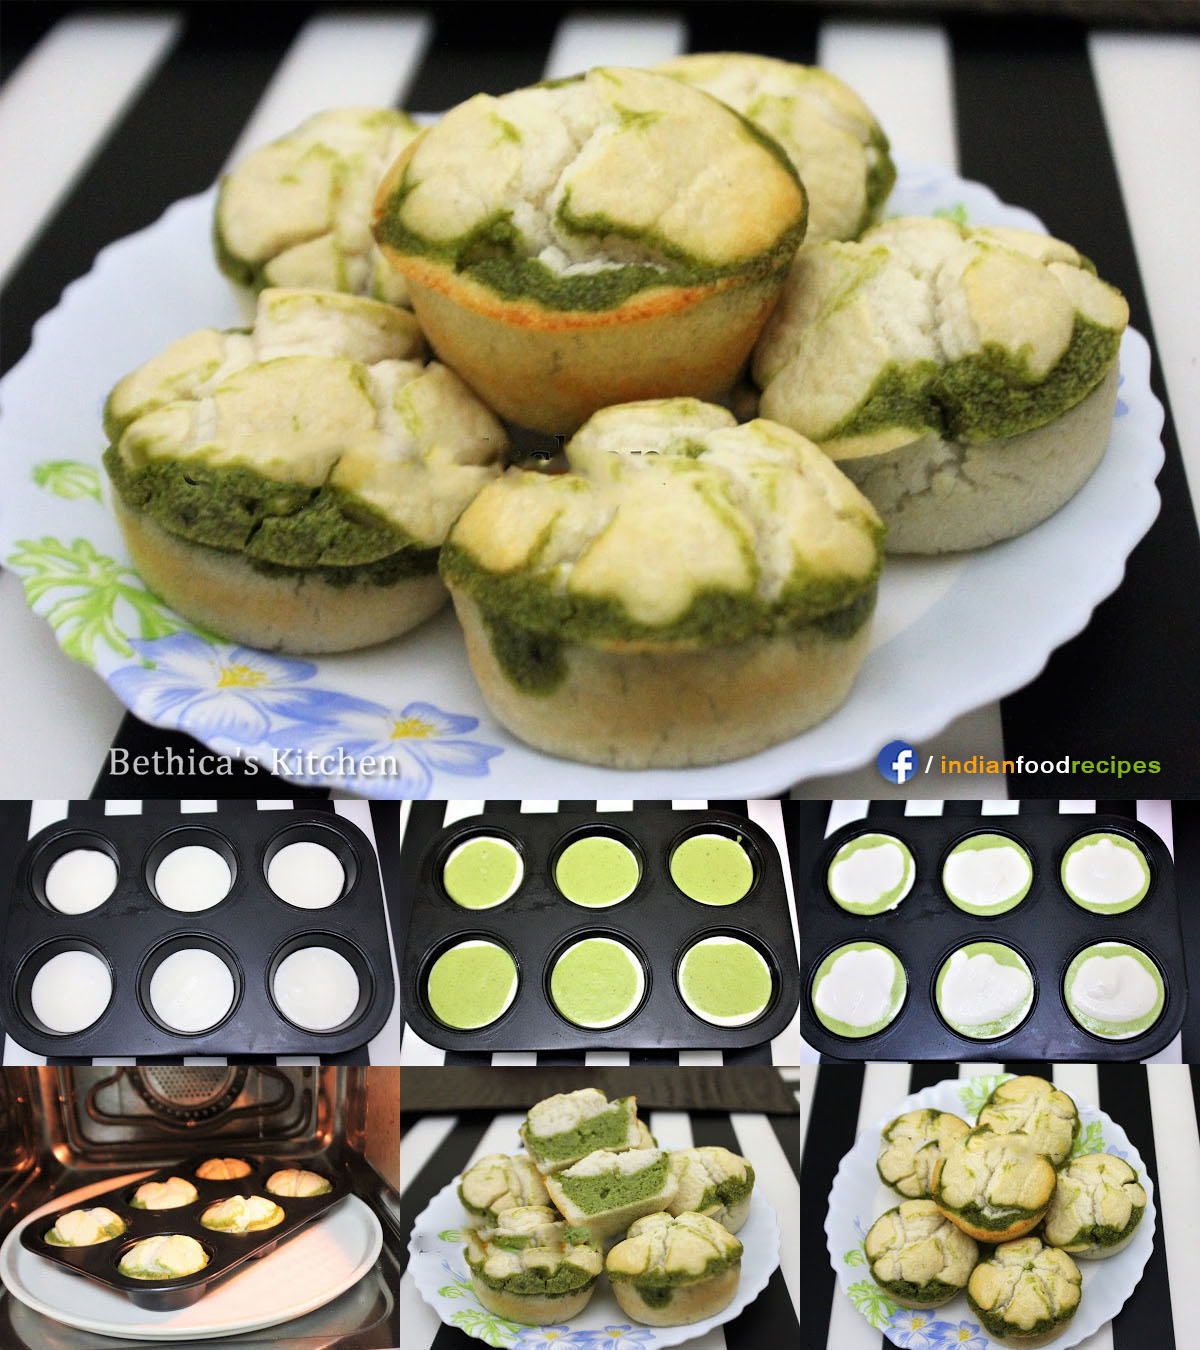 Layered Spinach Idli Muffins recipe step by step pictures